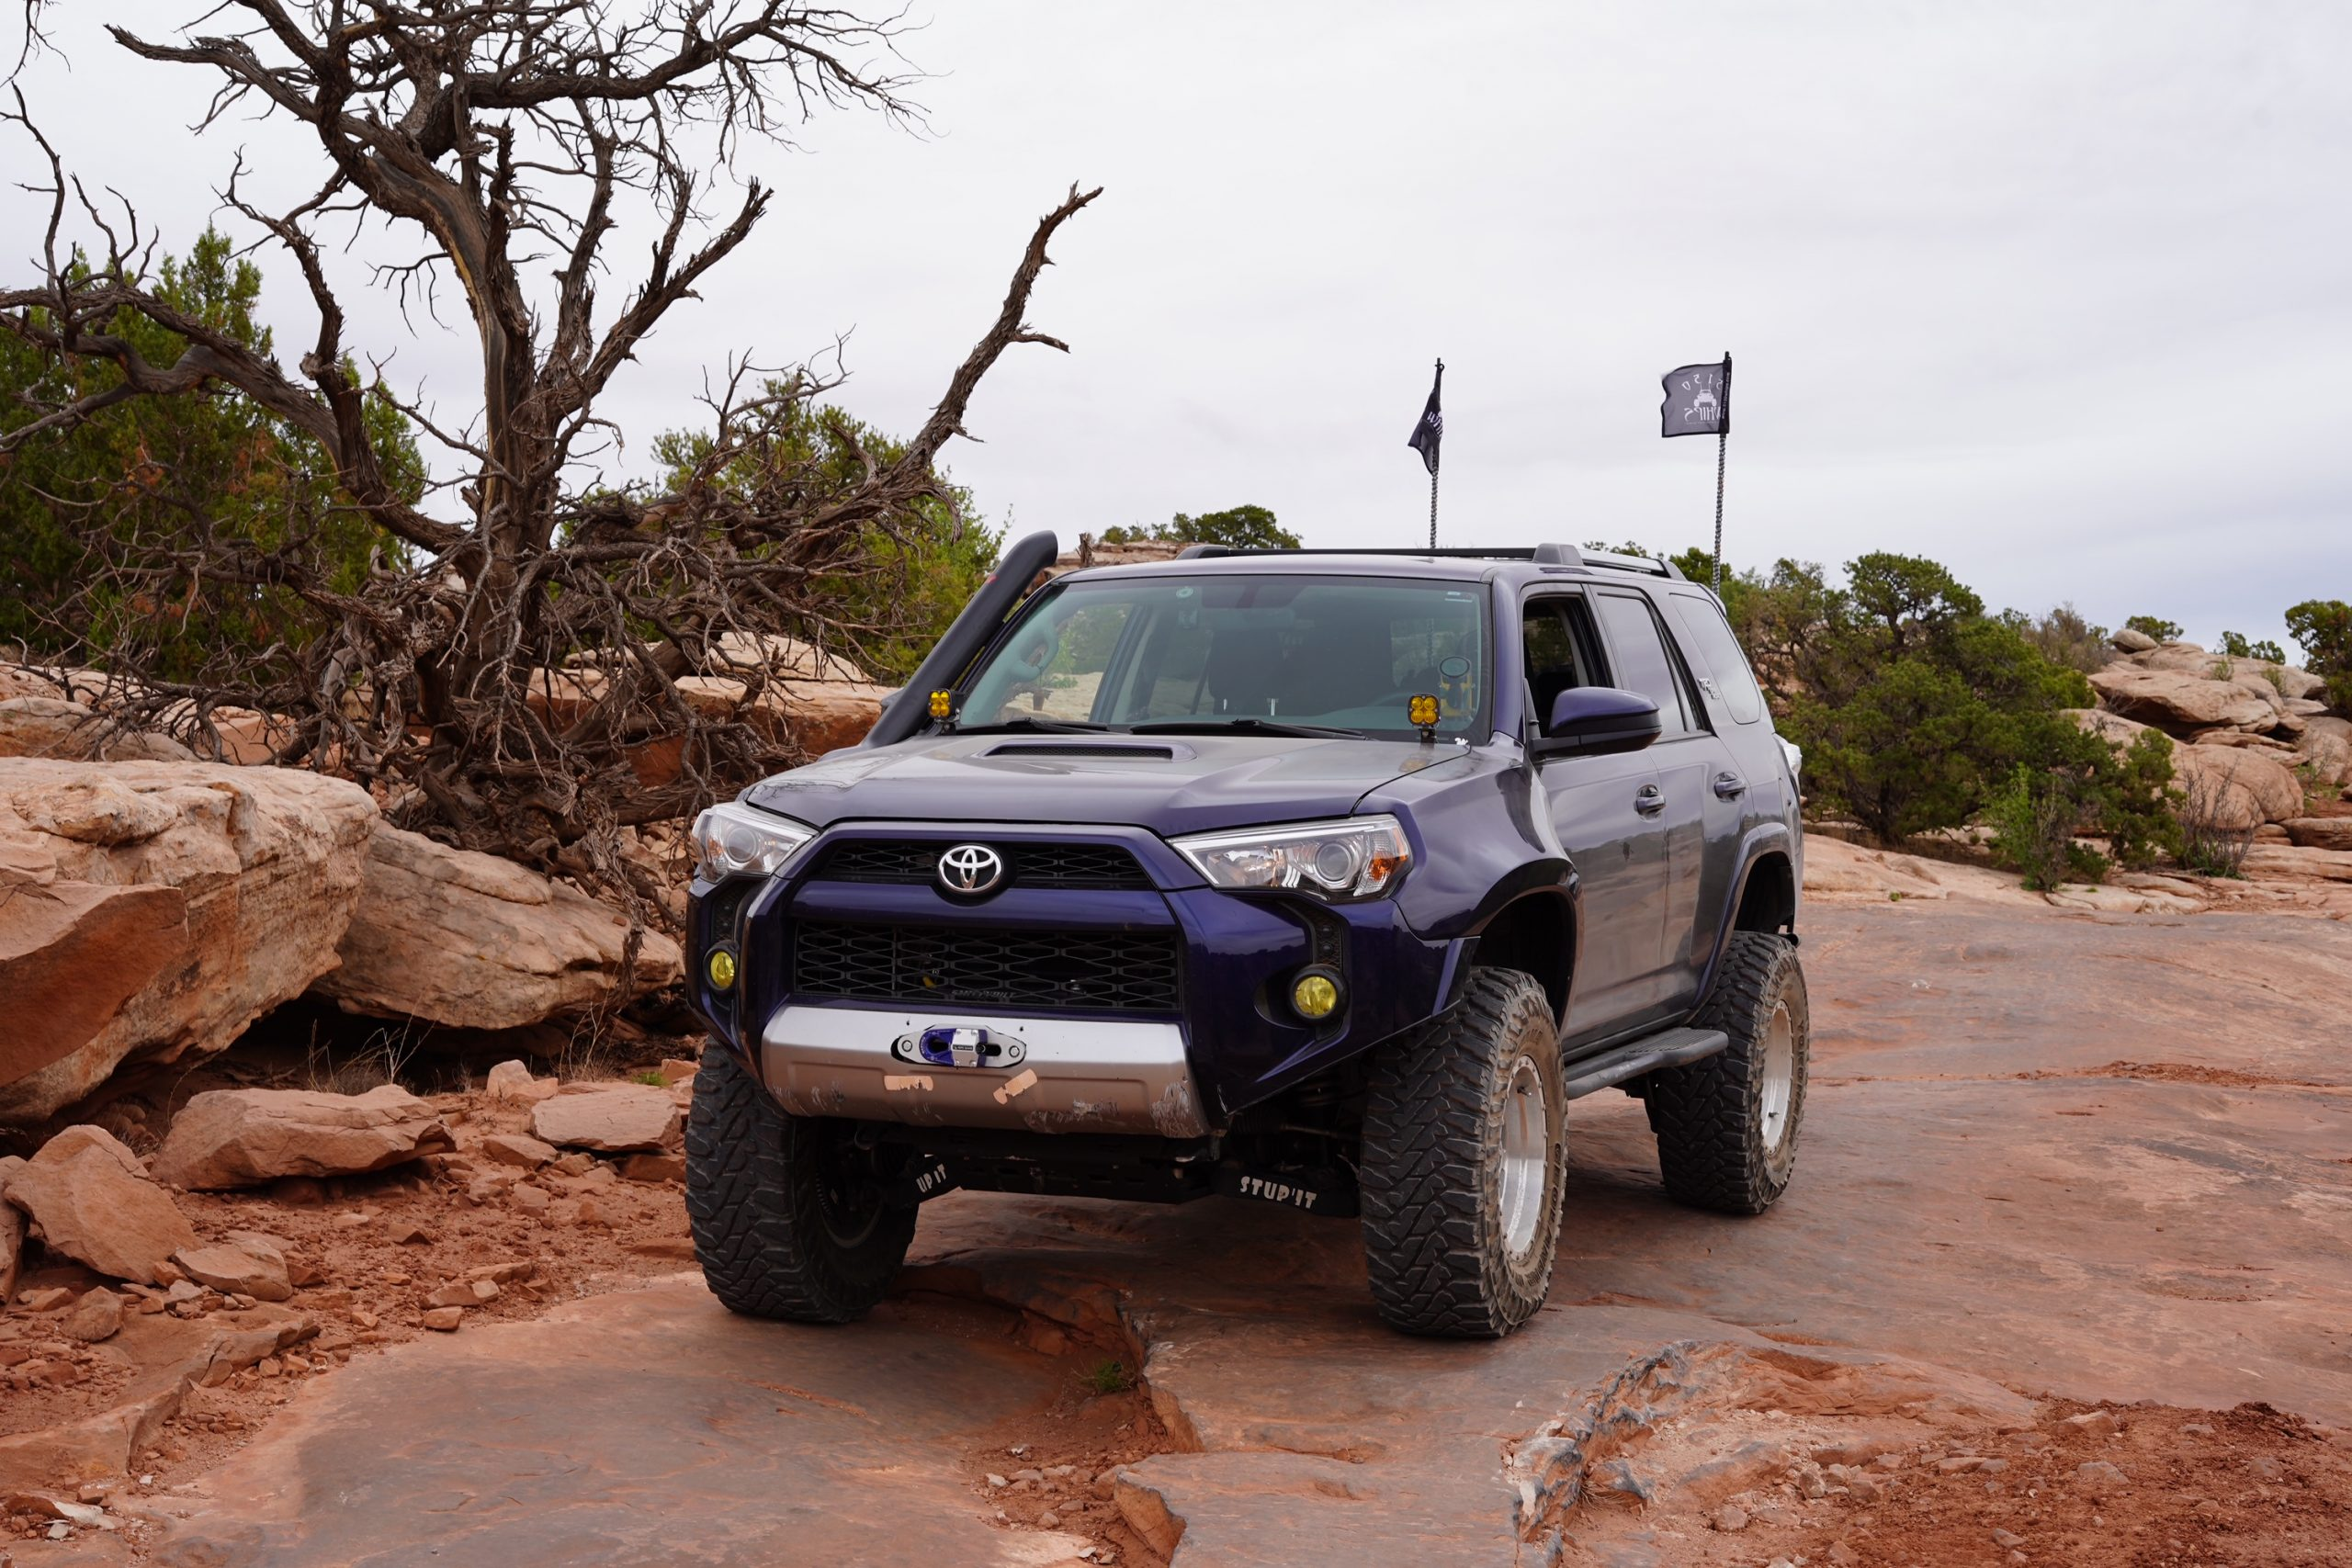 Artec Cross Bars for 5th Gen 4Runner - Complete Install and Overview